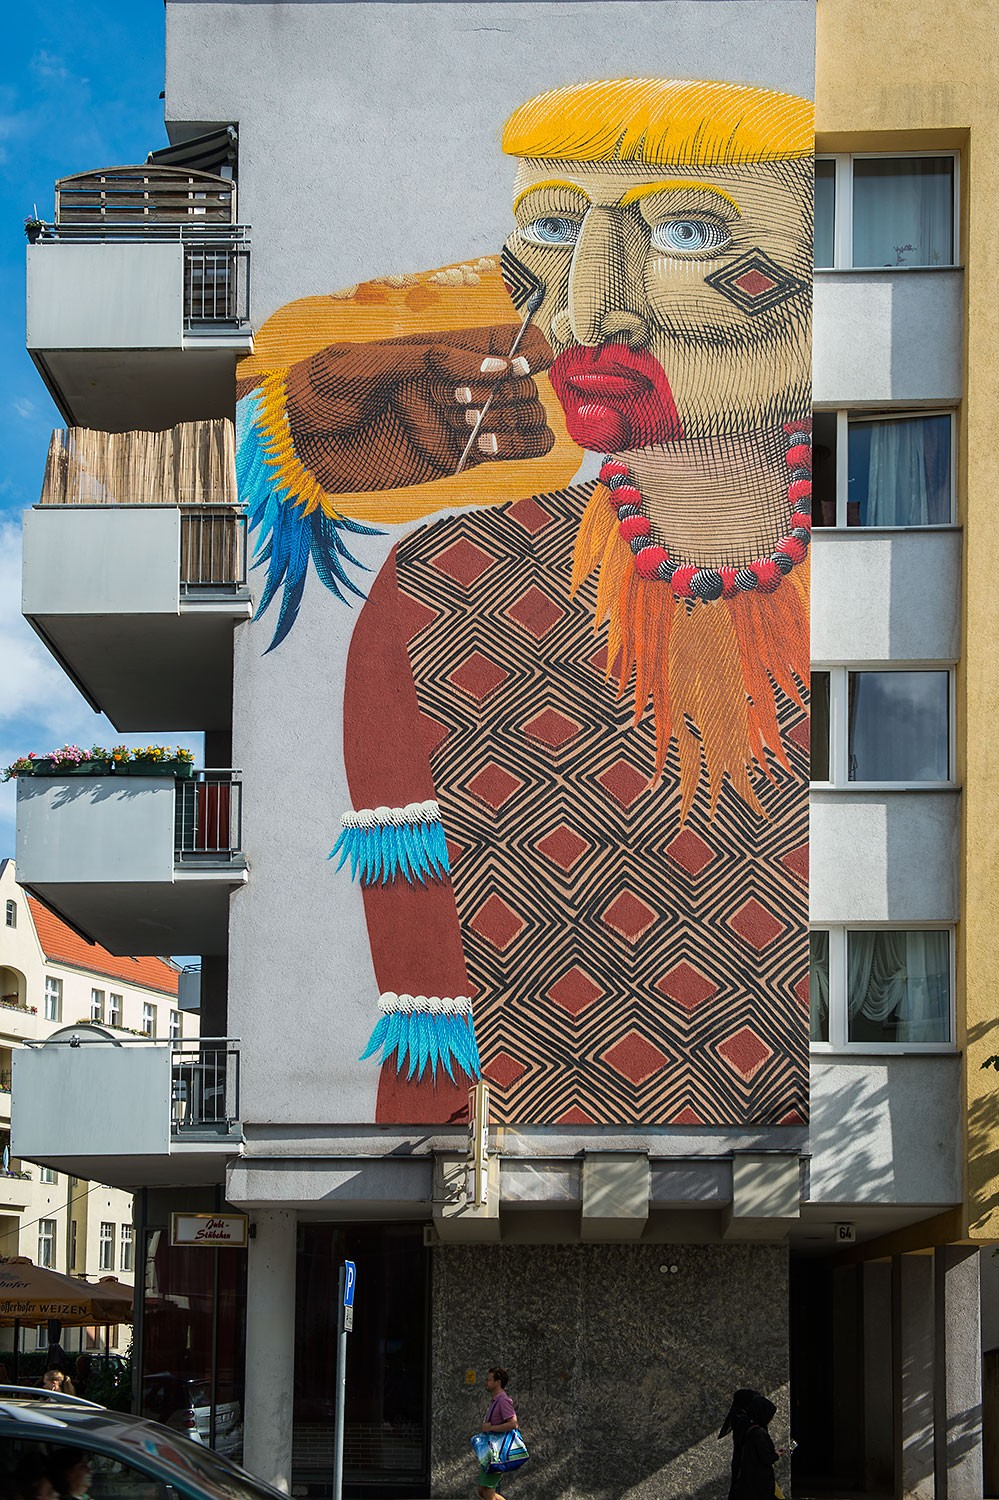 """Project M/10 """"Colors"""" curated by Instagrafite in partnership with Urban Nation, Berlin, Germany, in July 2016. #projectM #projectM10 #UrbanNation #UrbanNationBerlin #instagrafite #MuseumofUrbanAndContemporaryArt #streetart #nunca.art @urbannationberlin @instagrafite @nunca.art photo by Nika Kramer"""